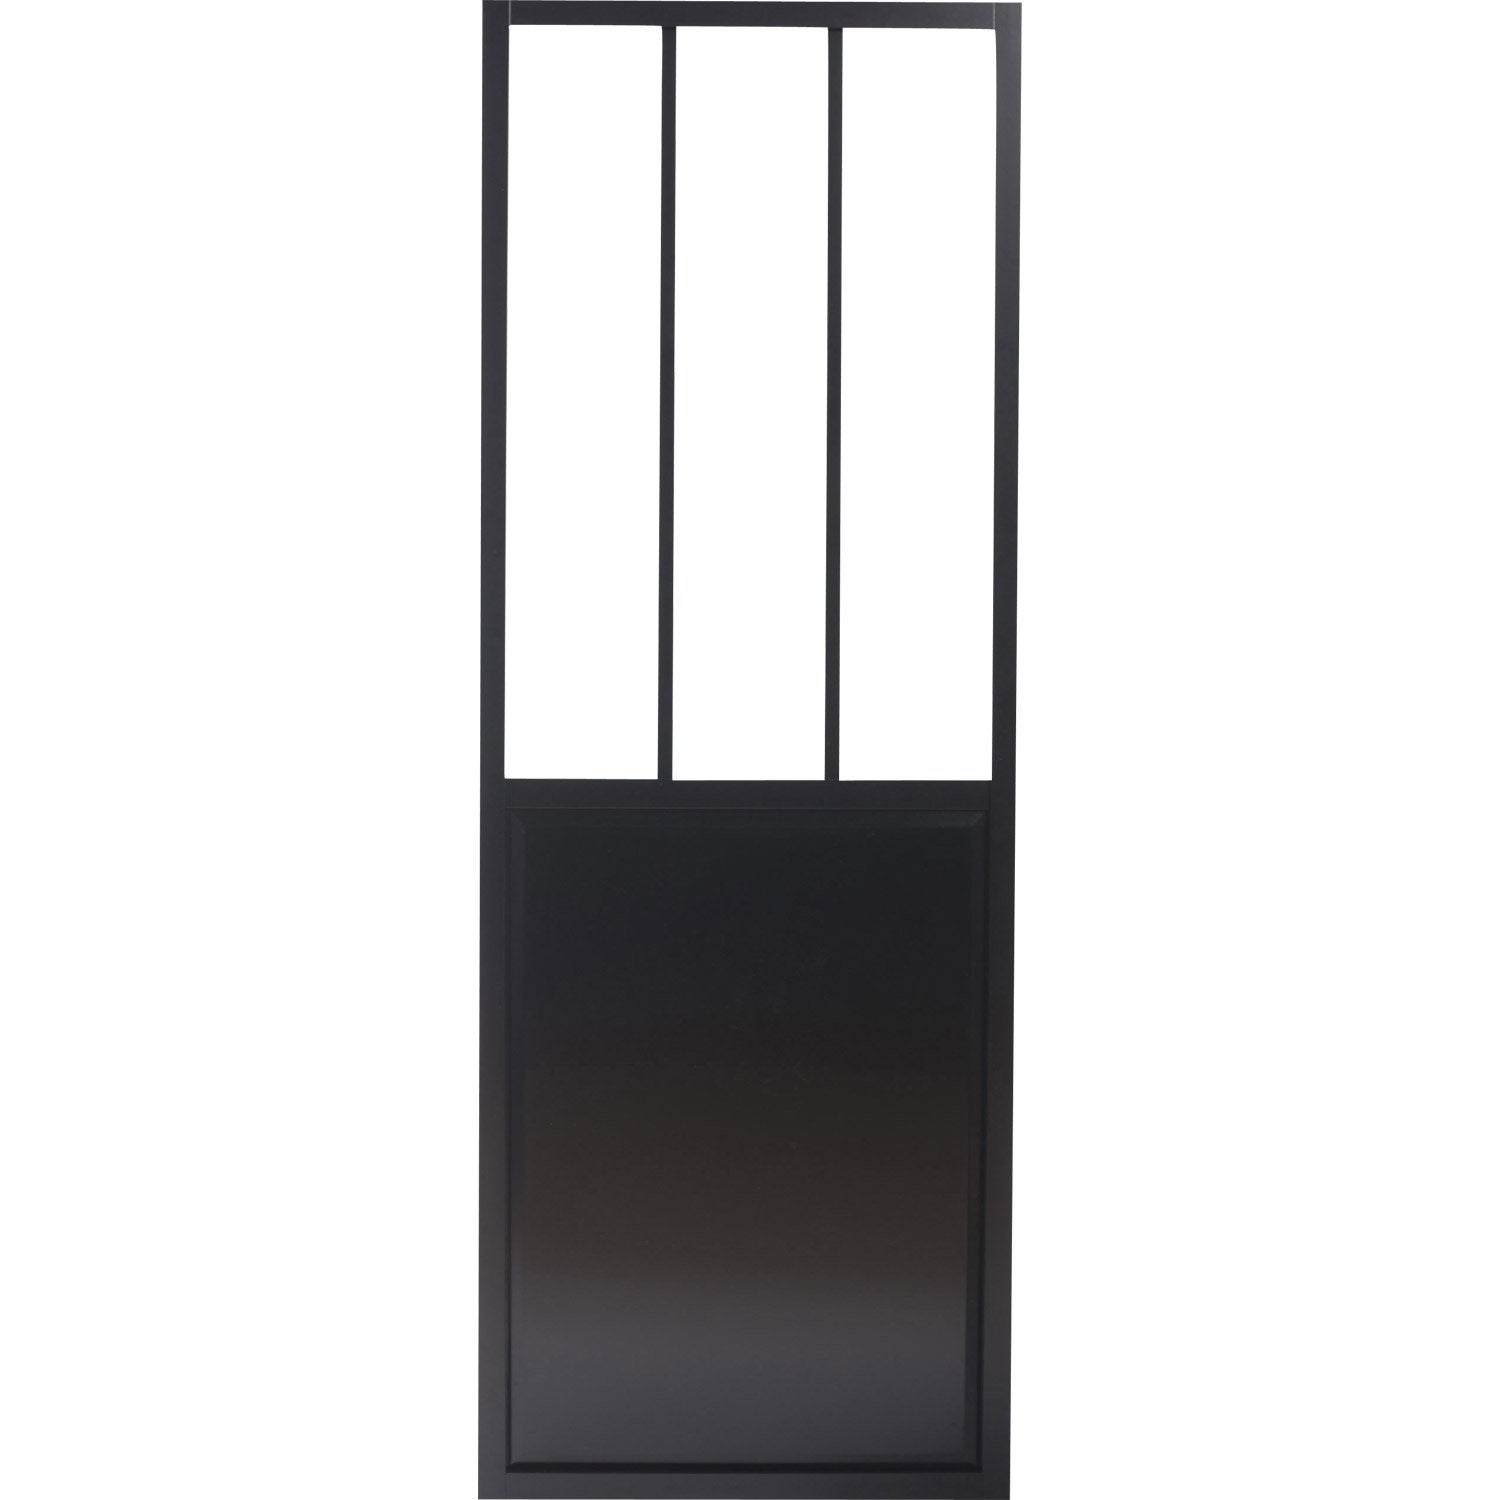 porte coulissante aluminium noir fonc verre tremp atelier artens 204 x 83 cm leroy merlin. Black Bedroom Furniture Sets. Home Design Ideas